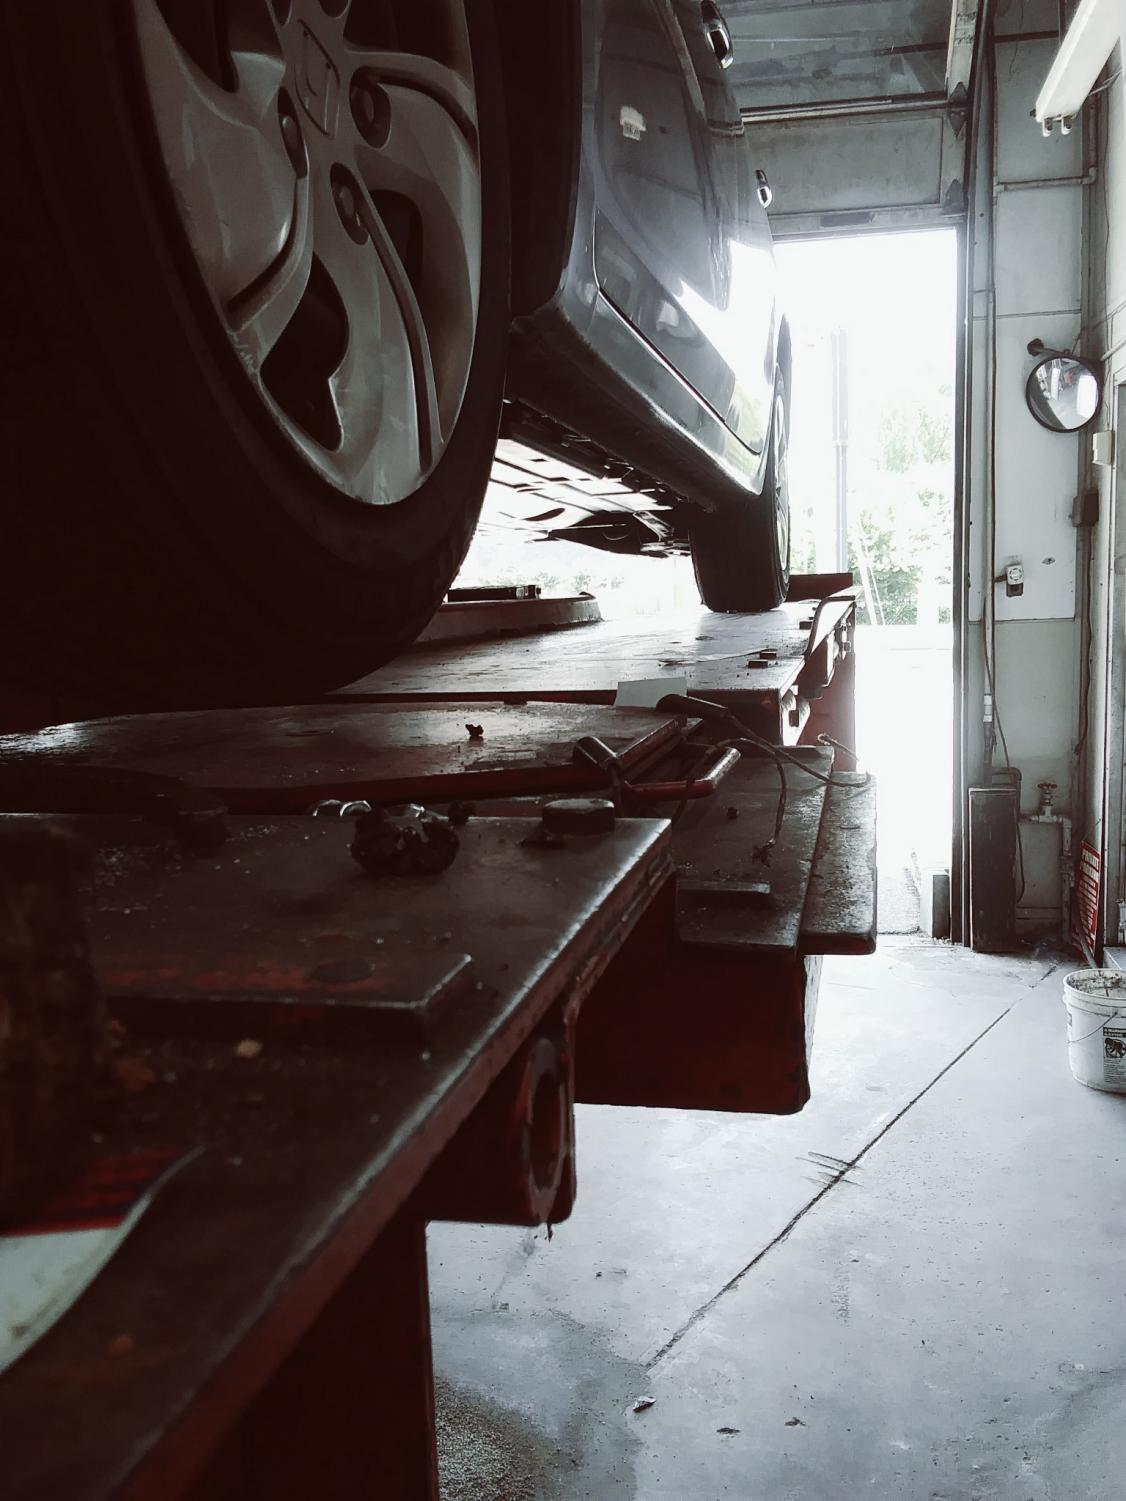 A Honda odyssey waits on the car lift for a tire alignment.